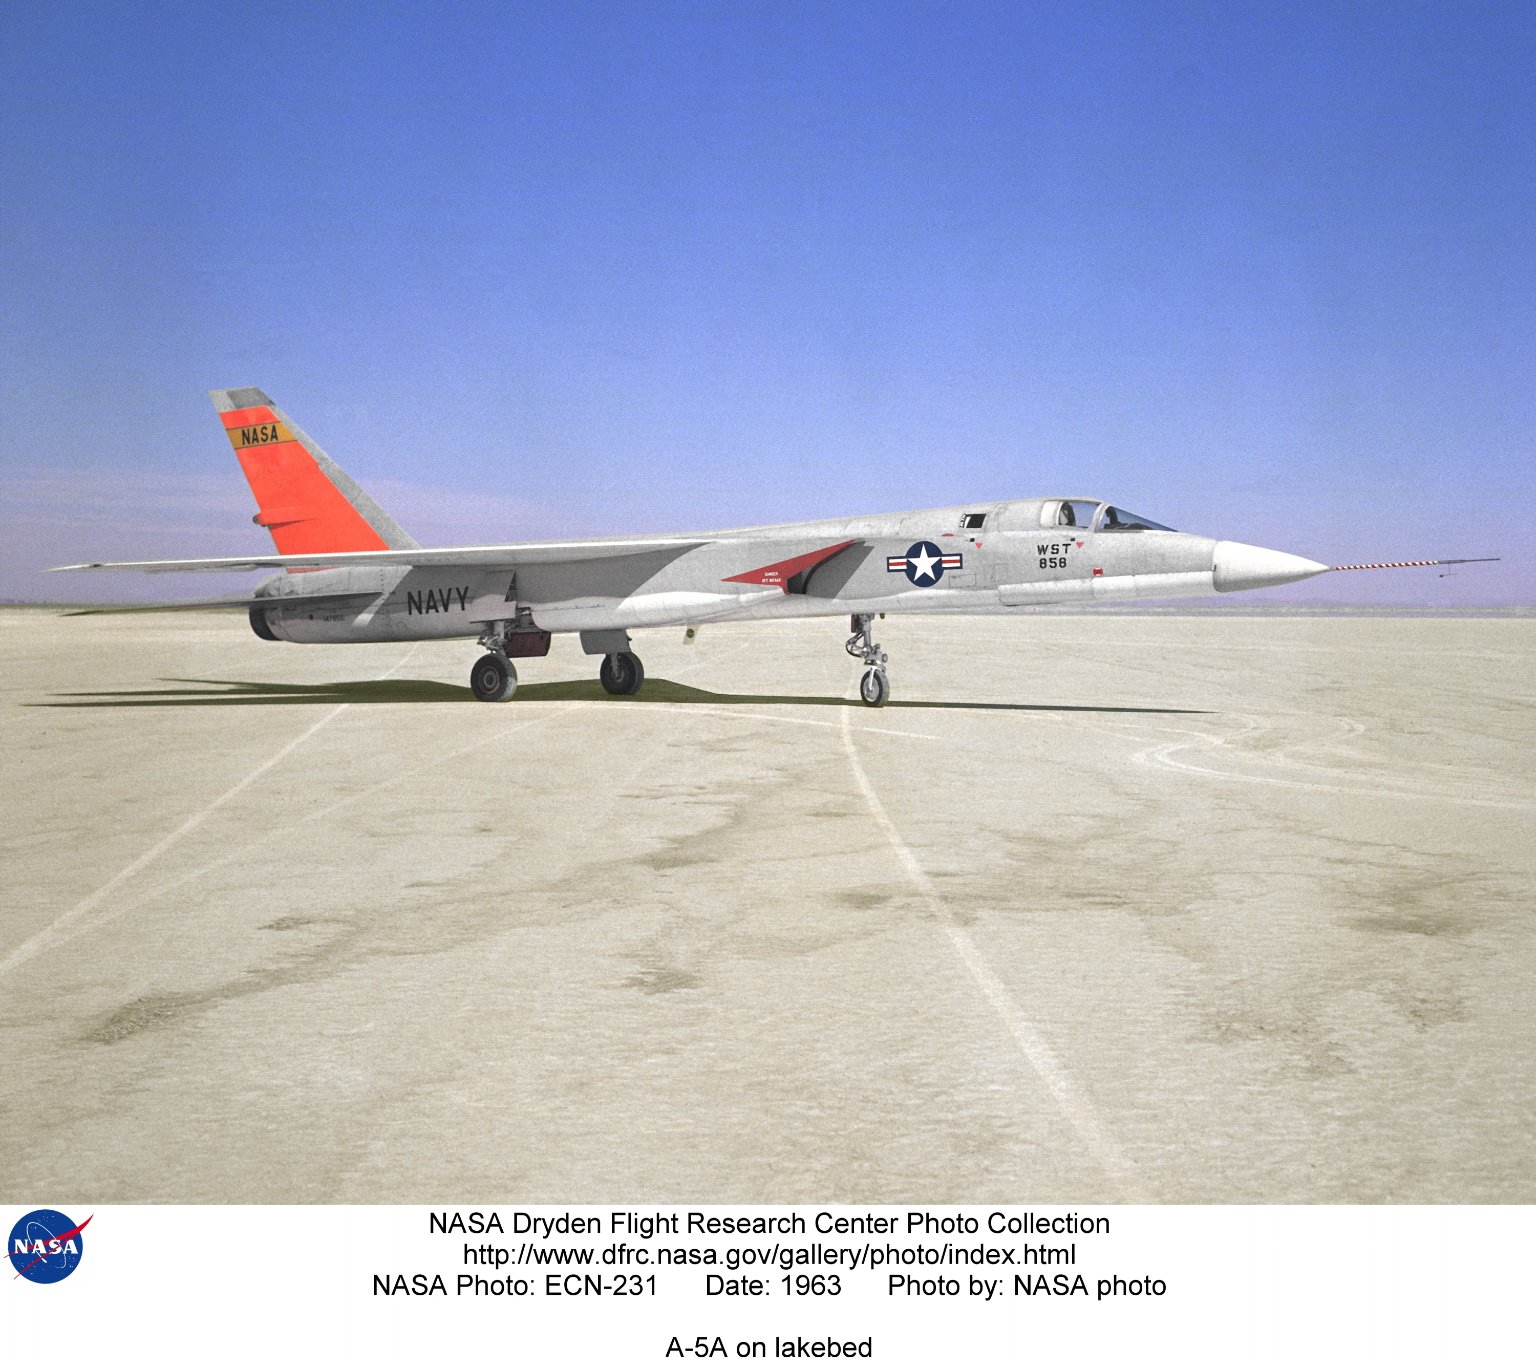 A-5A on lakebed